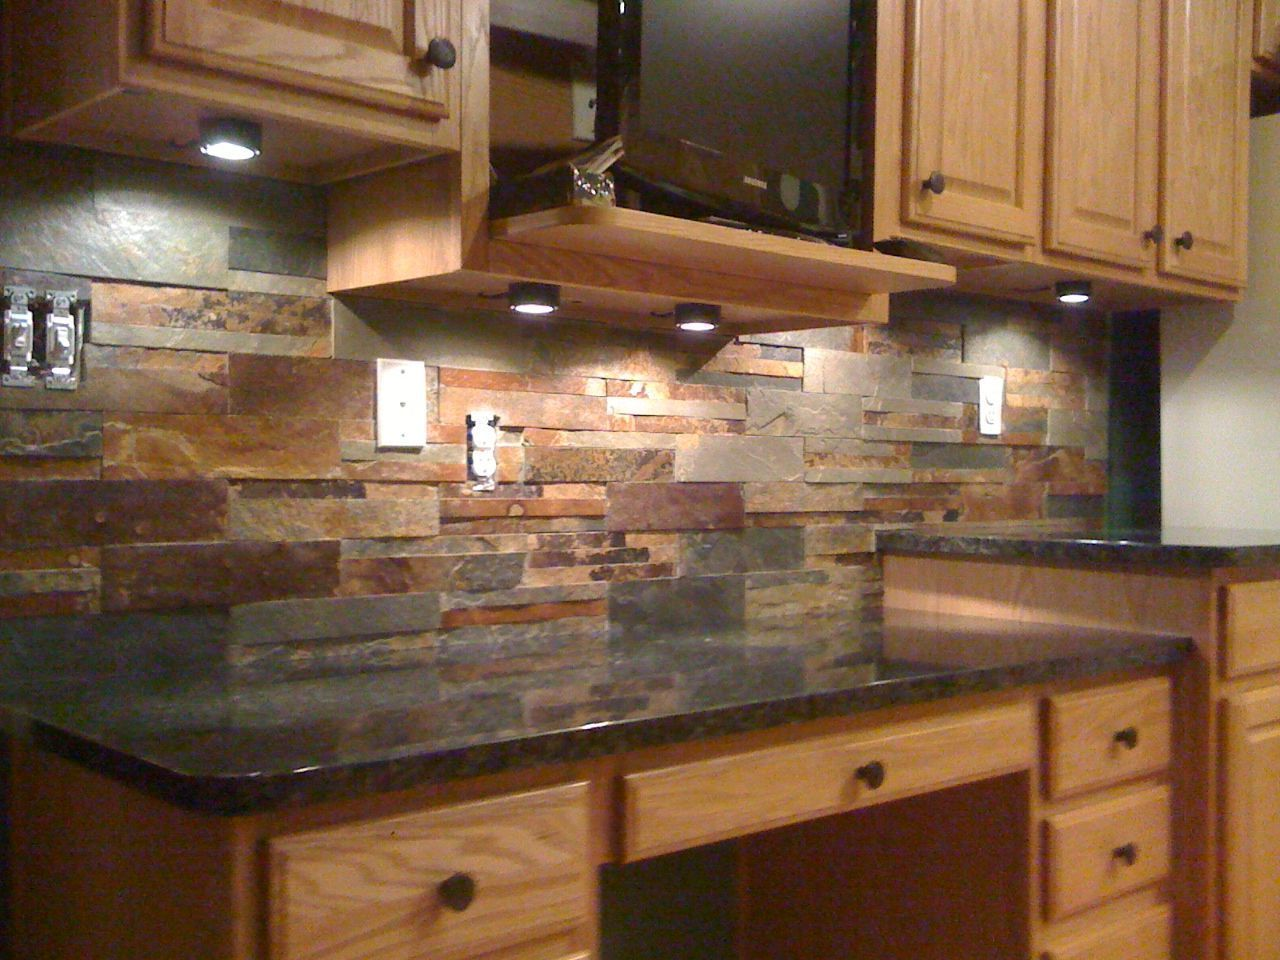 This Natural Slate Tile Backsplash Is Shown With Uba Tuba Granite Back Splash Pinterest